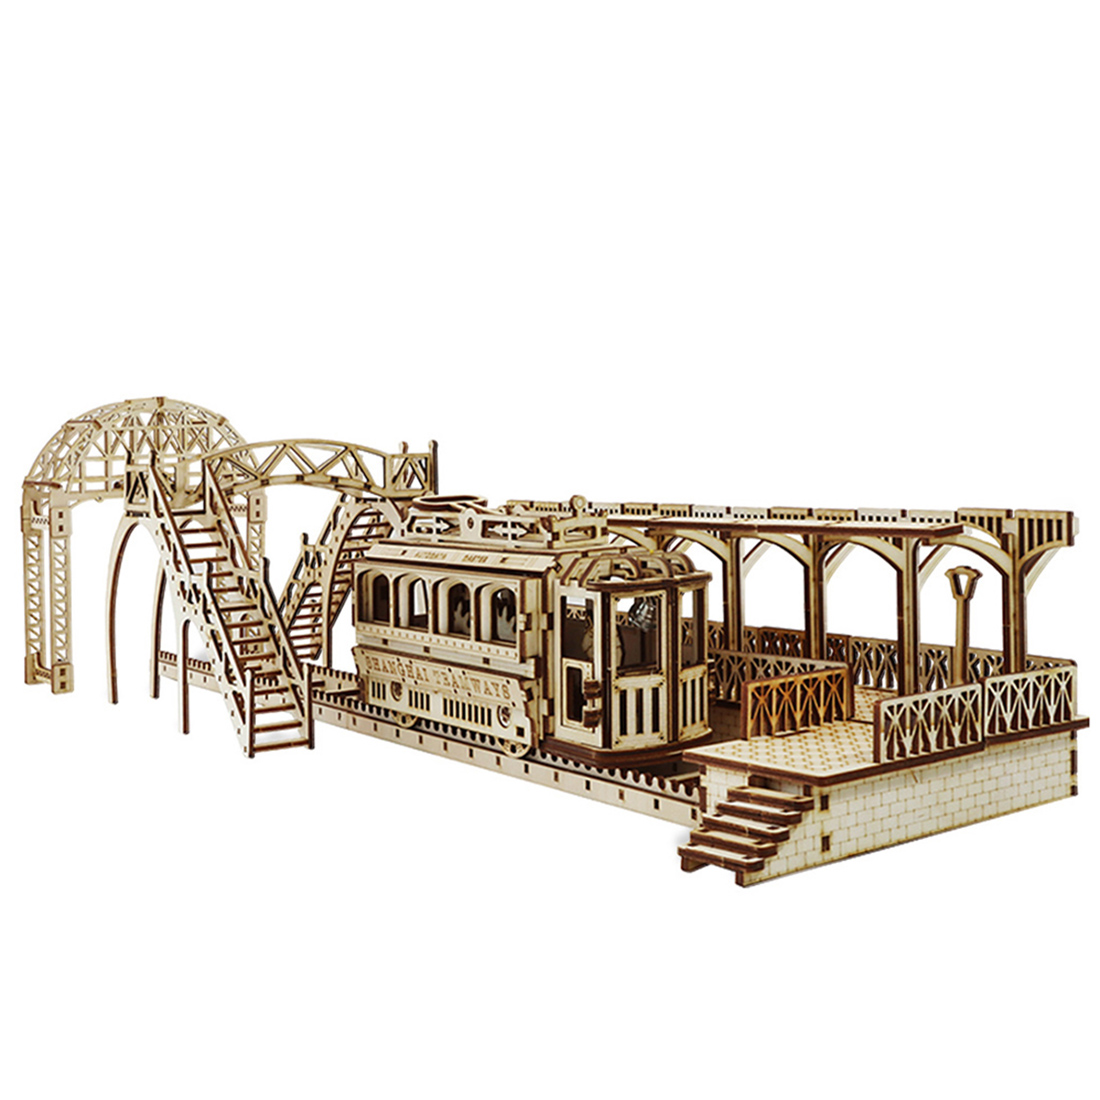 3D Wooden Puzzle DIY Tram Station Craft Kits Educational Assembly Toy  Toys For Kids Birthdaty Gifts 2020